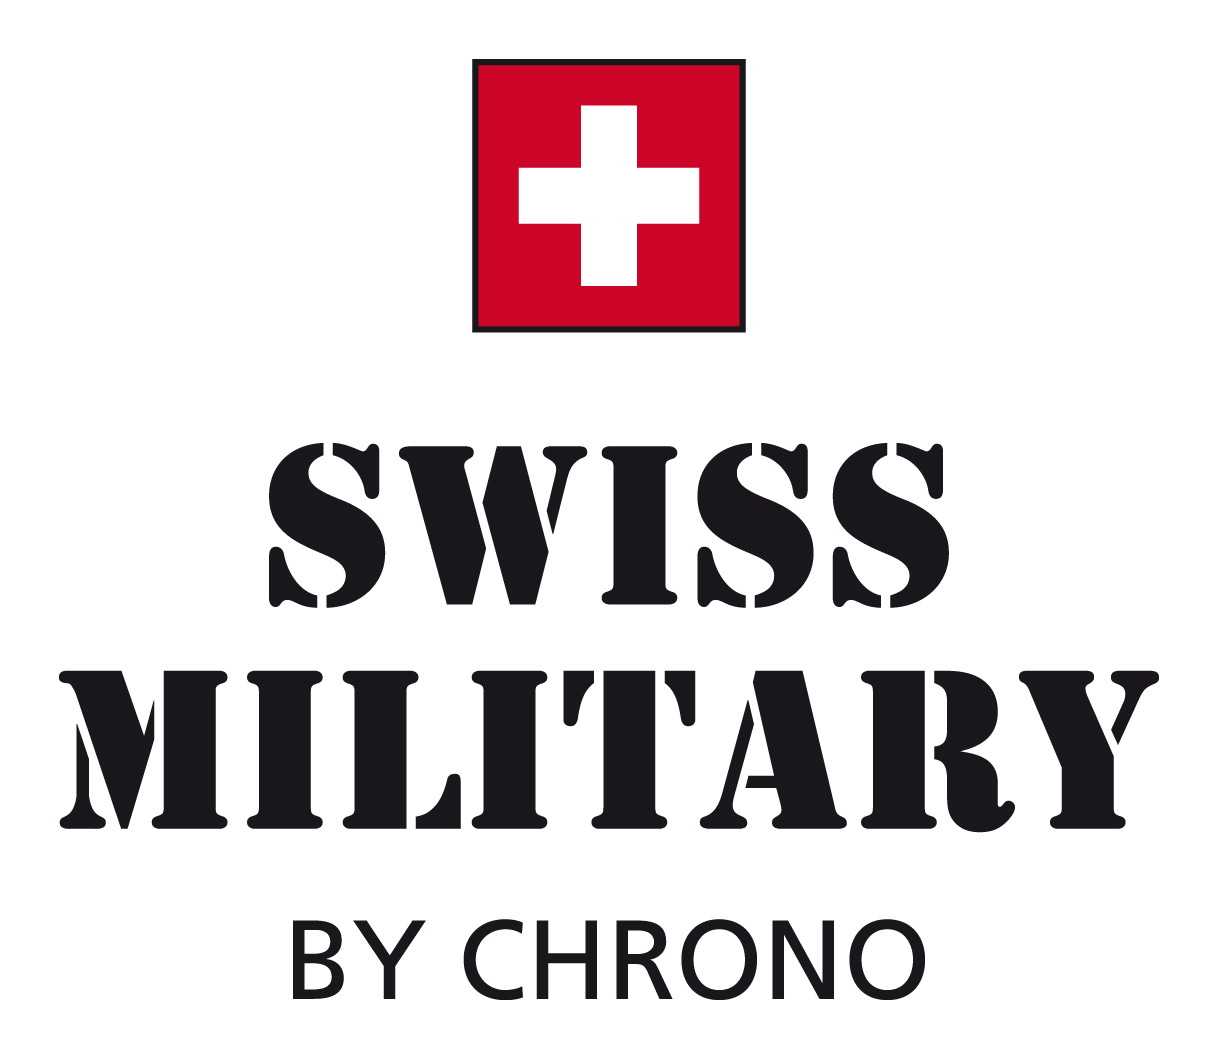 swiss_military_logo2.jpg